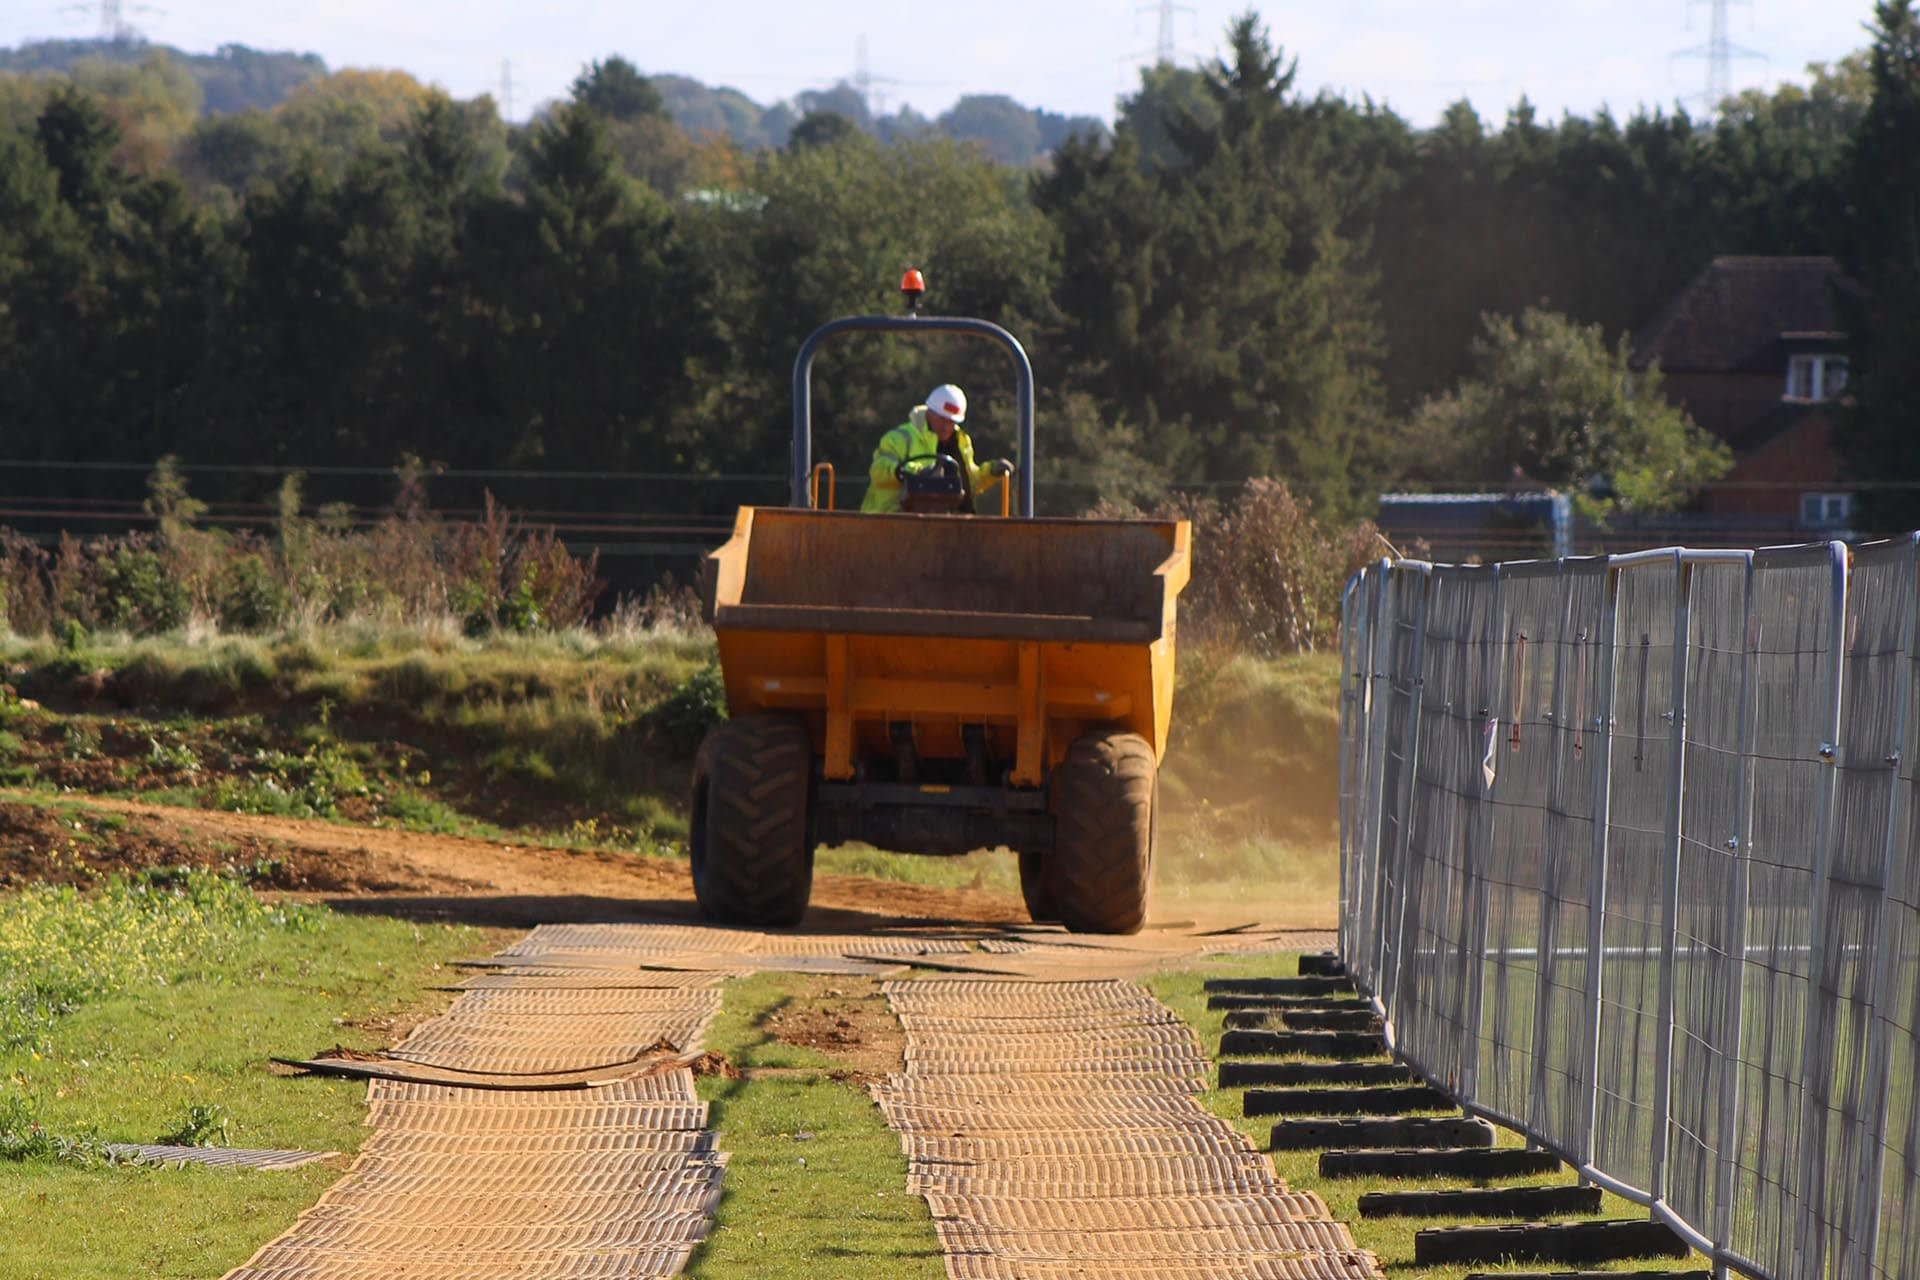 eurotrak-hd-access-mat-ground-protection-temporary-access-construction-site-fencing